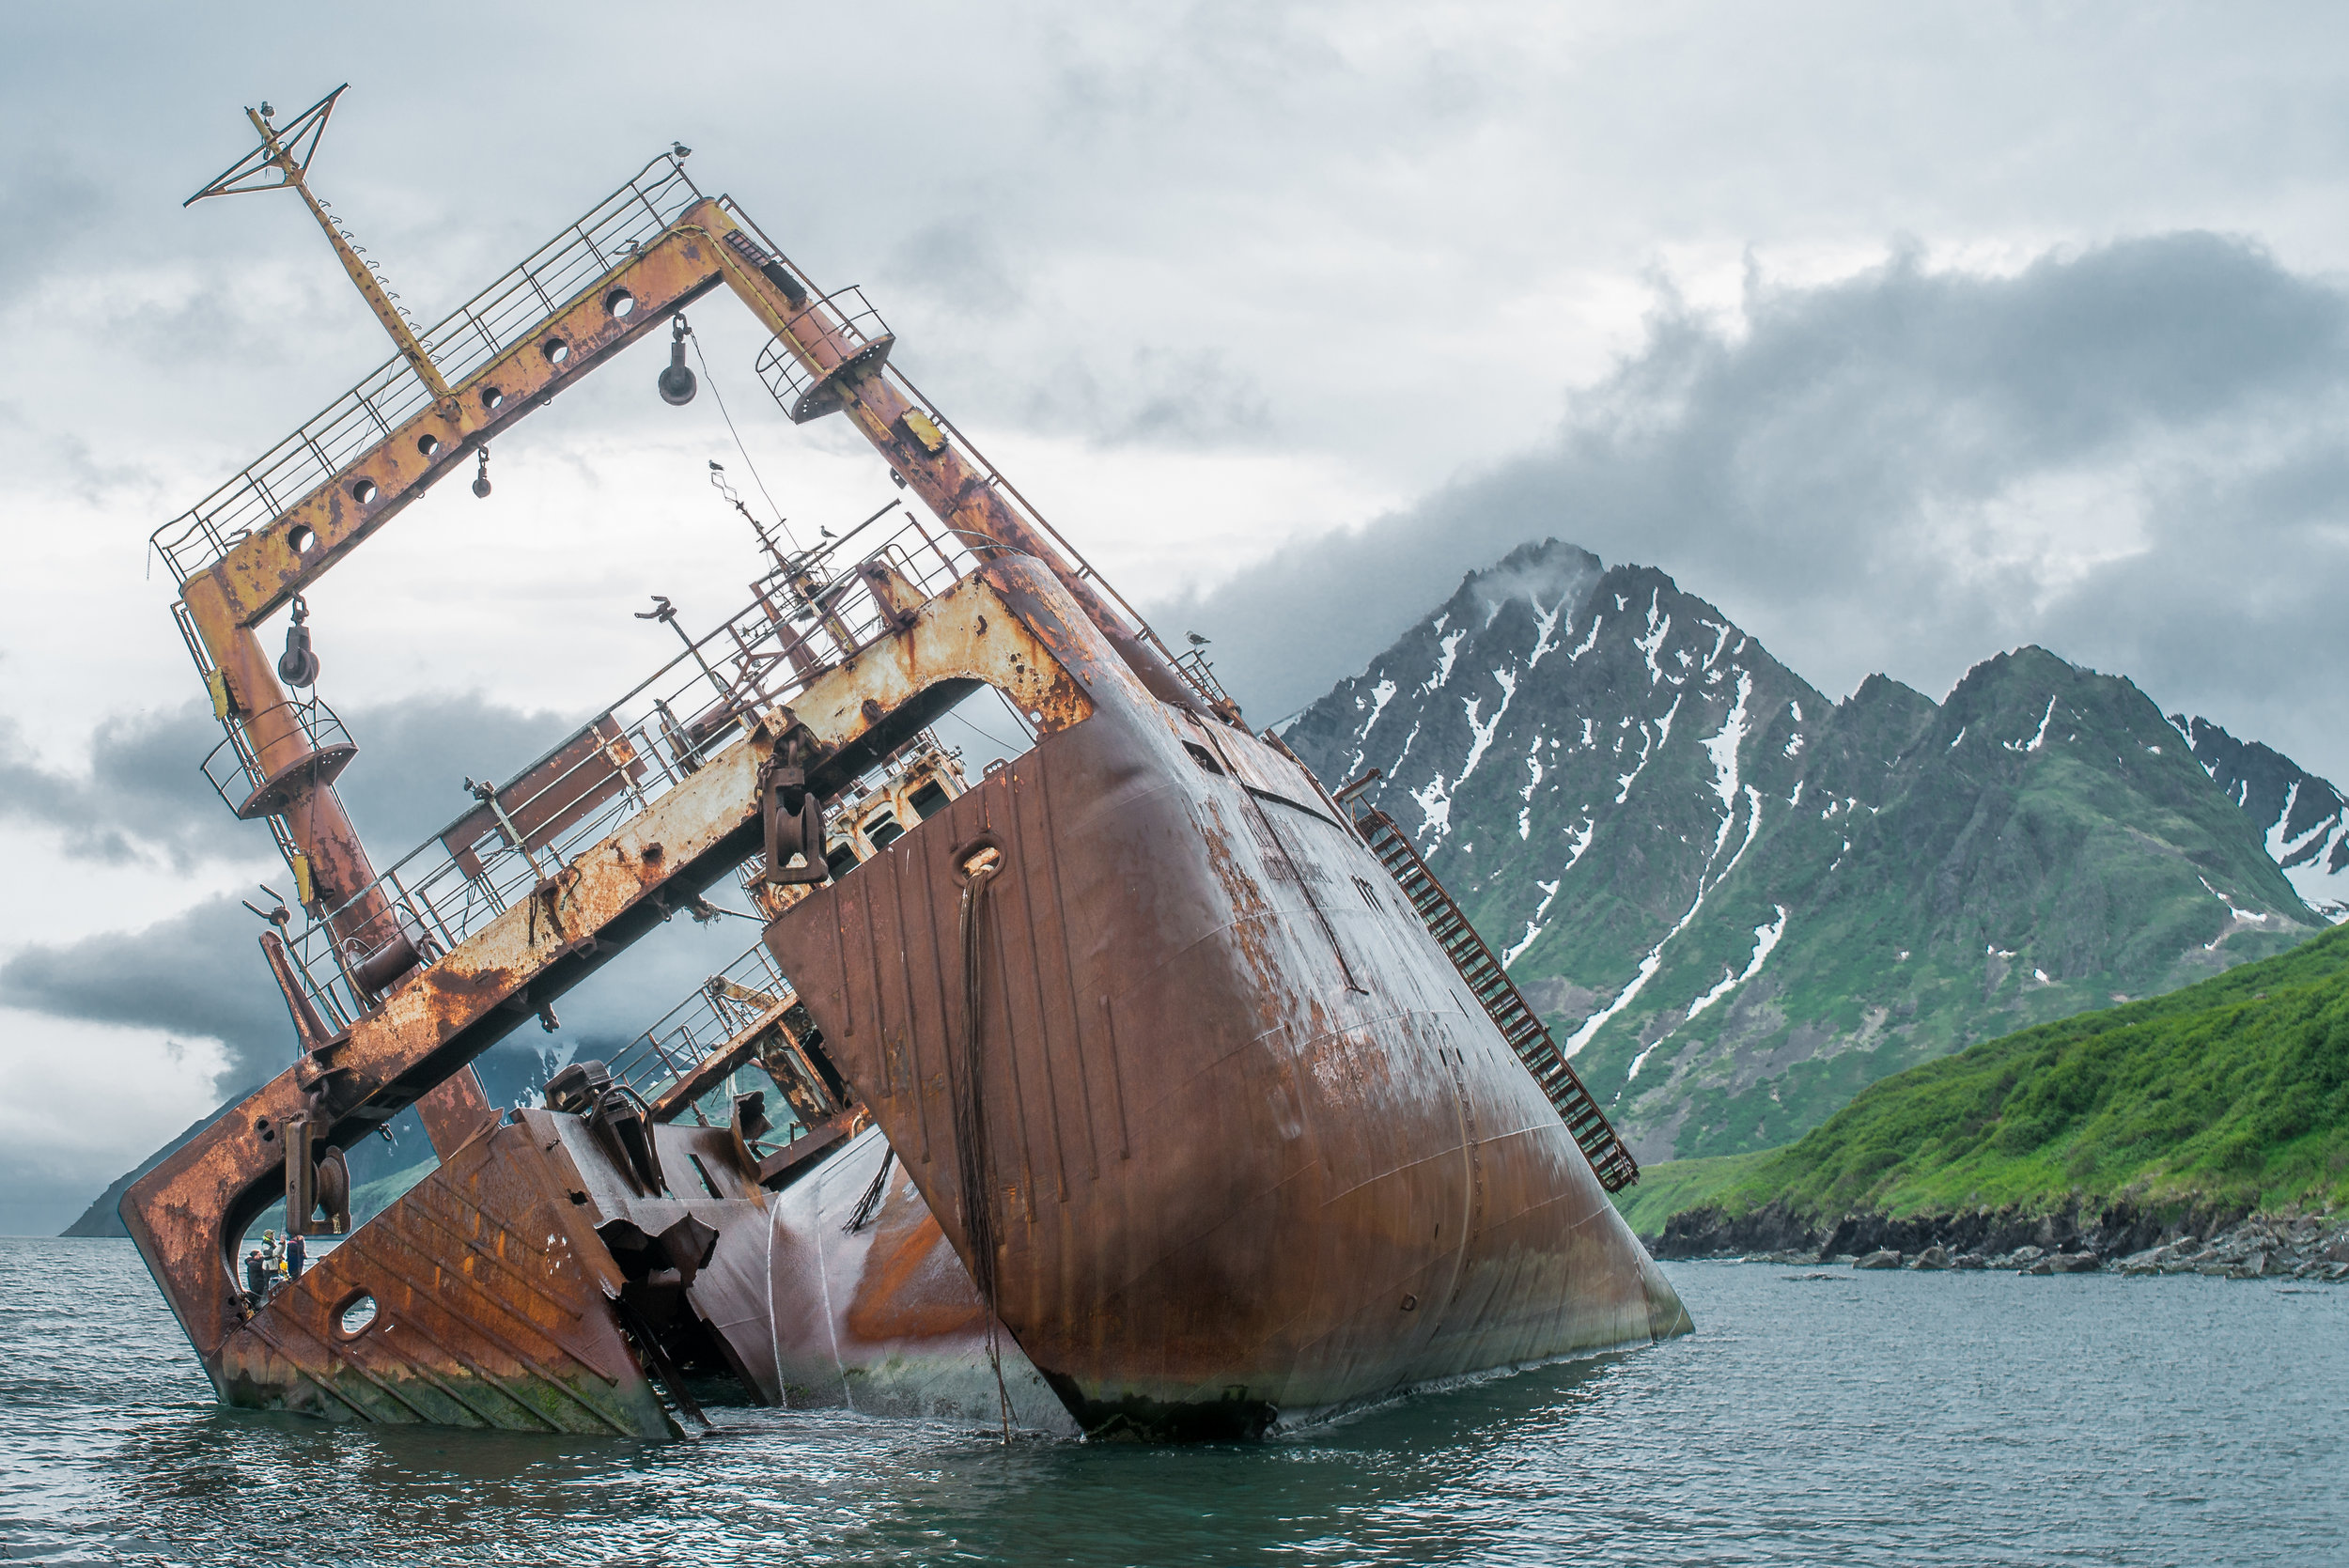 Featured Photo 54:Krechet Trawler Shipwrecked in 1978 during a storm - Bhukta Lavrova, KAM (RU)  EQ: D7200, 35mm f/1.4  Taken: 7-3-2017 at 16:04   Settings: 53mm eqv, 1/60s, f/11, ISO200, 1/3EV  Conditions: overcast